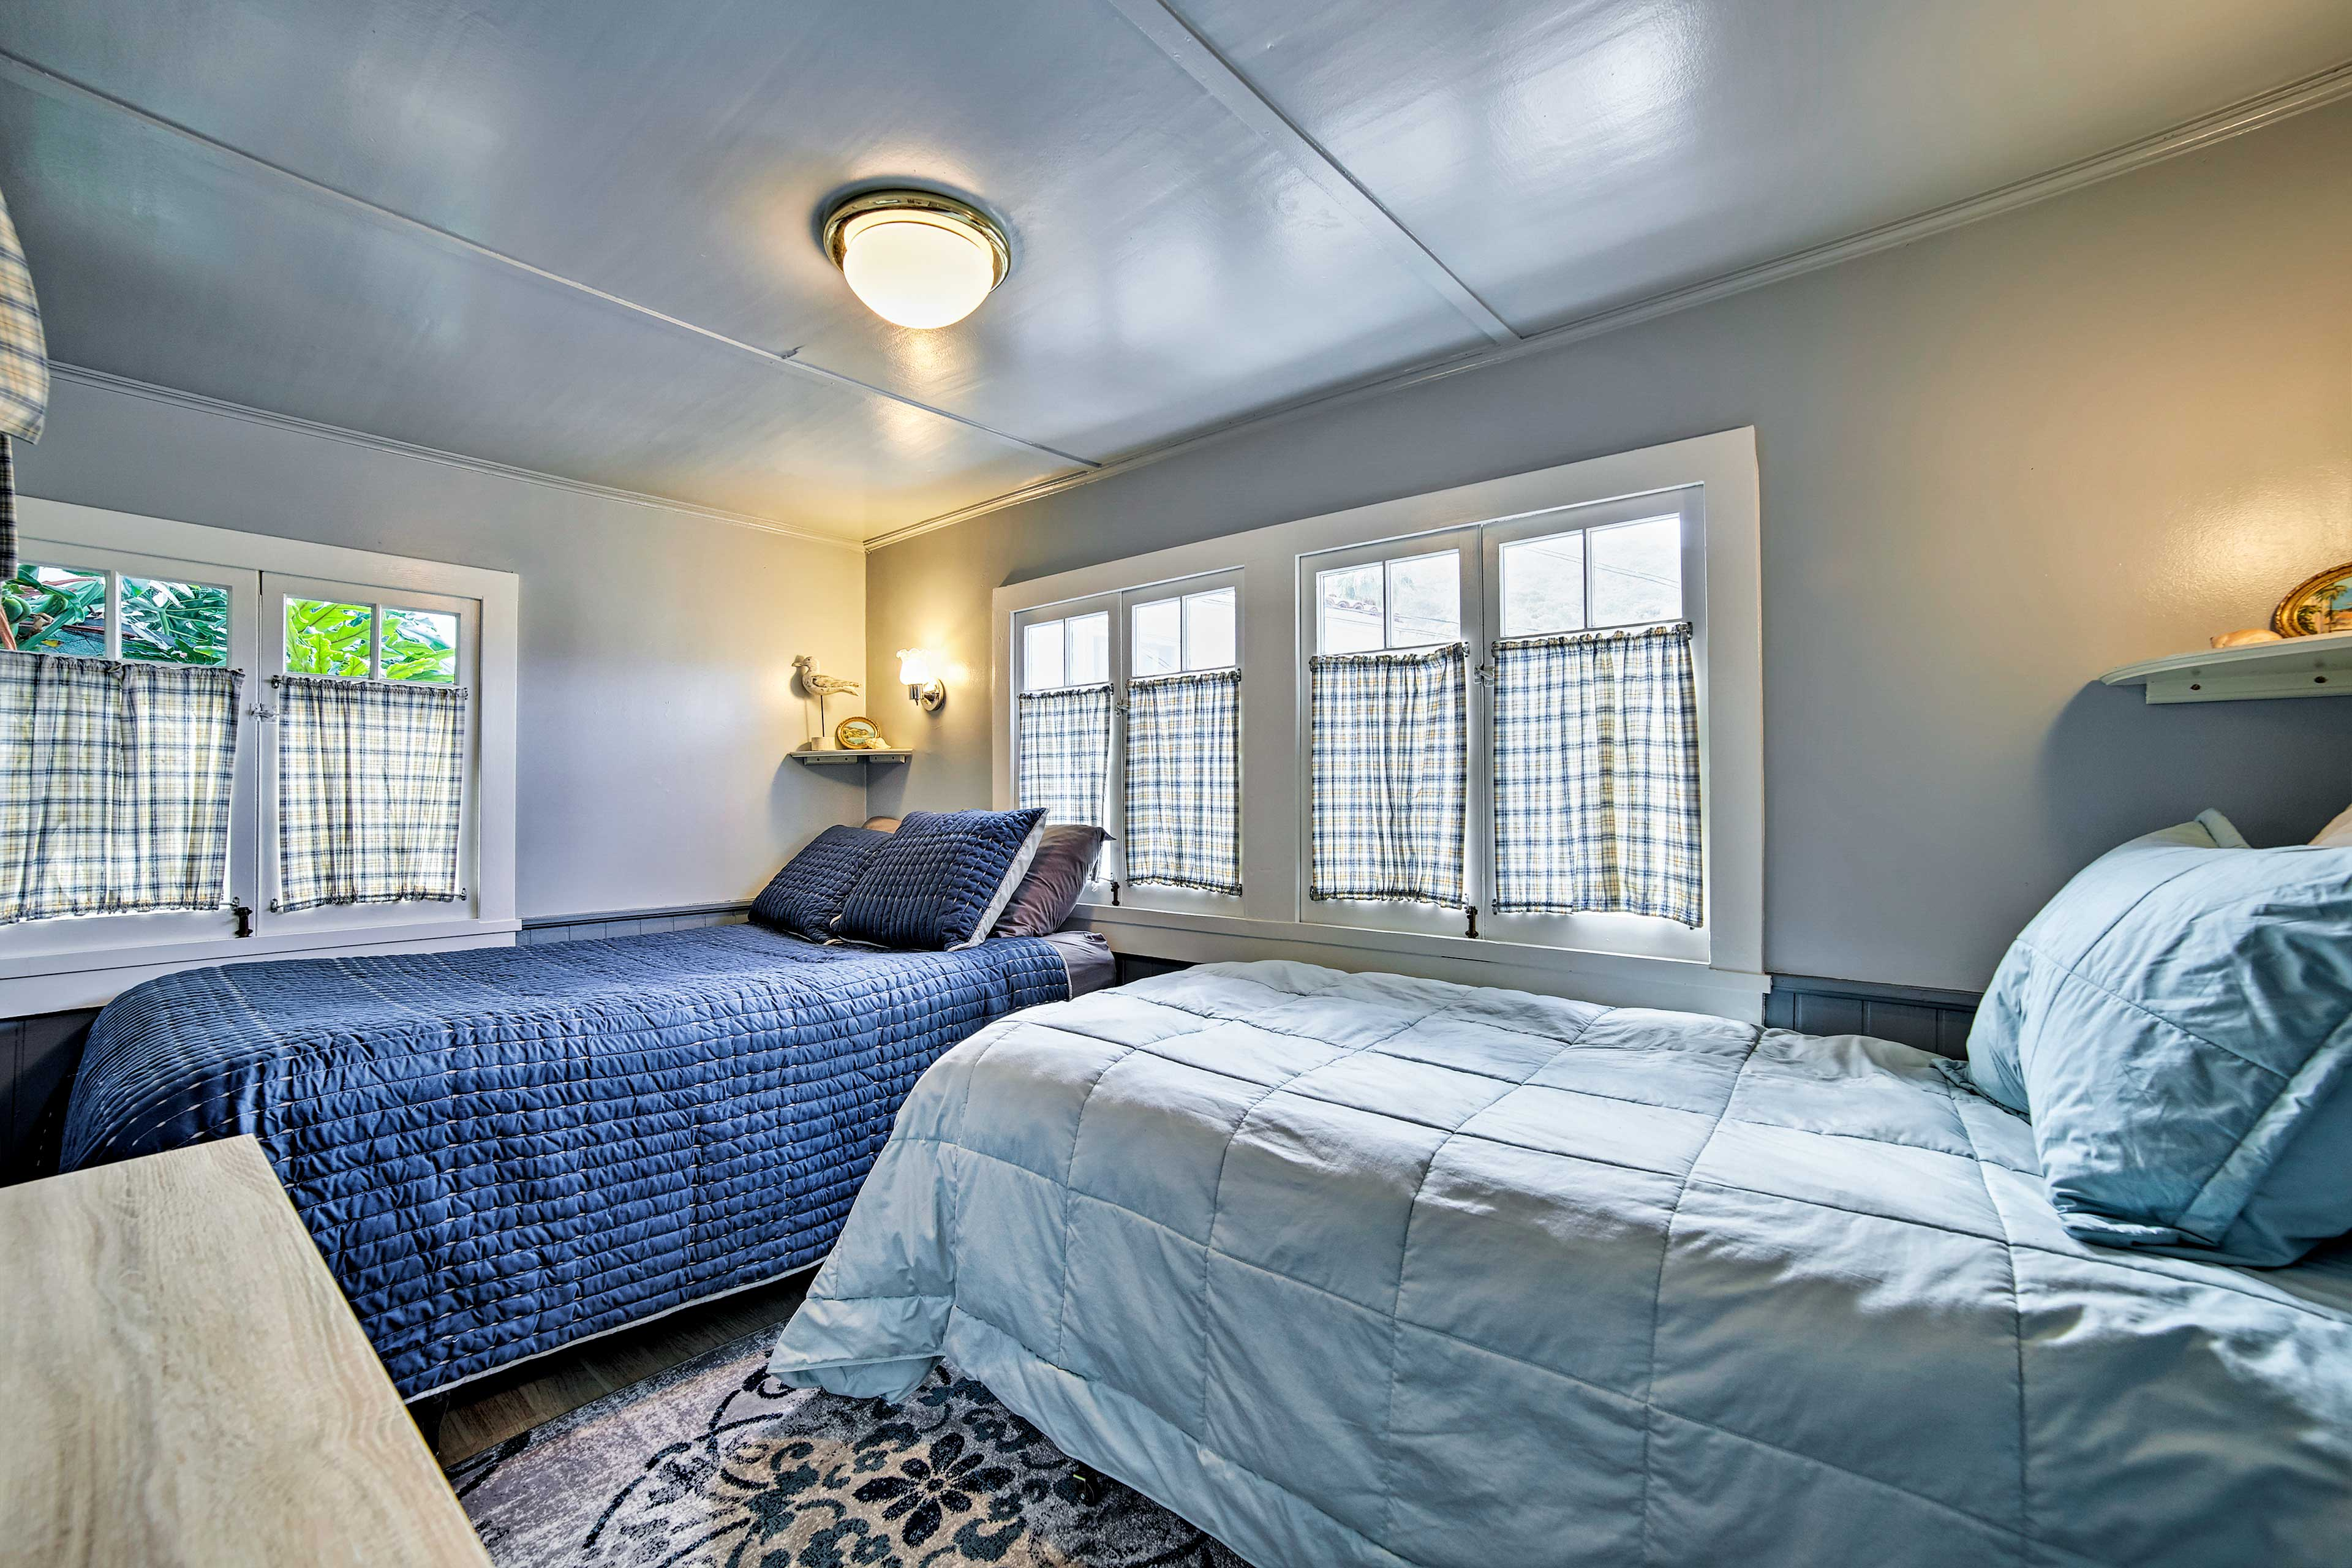 Find a full and twin-sized bed in this room.